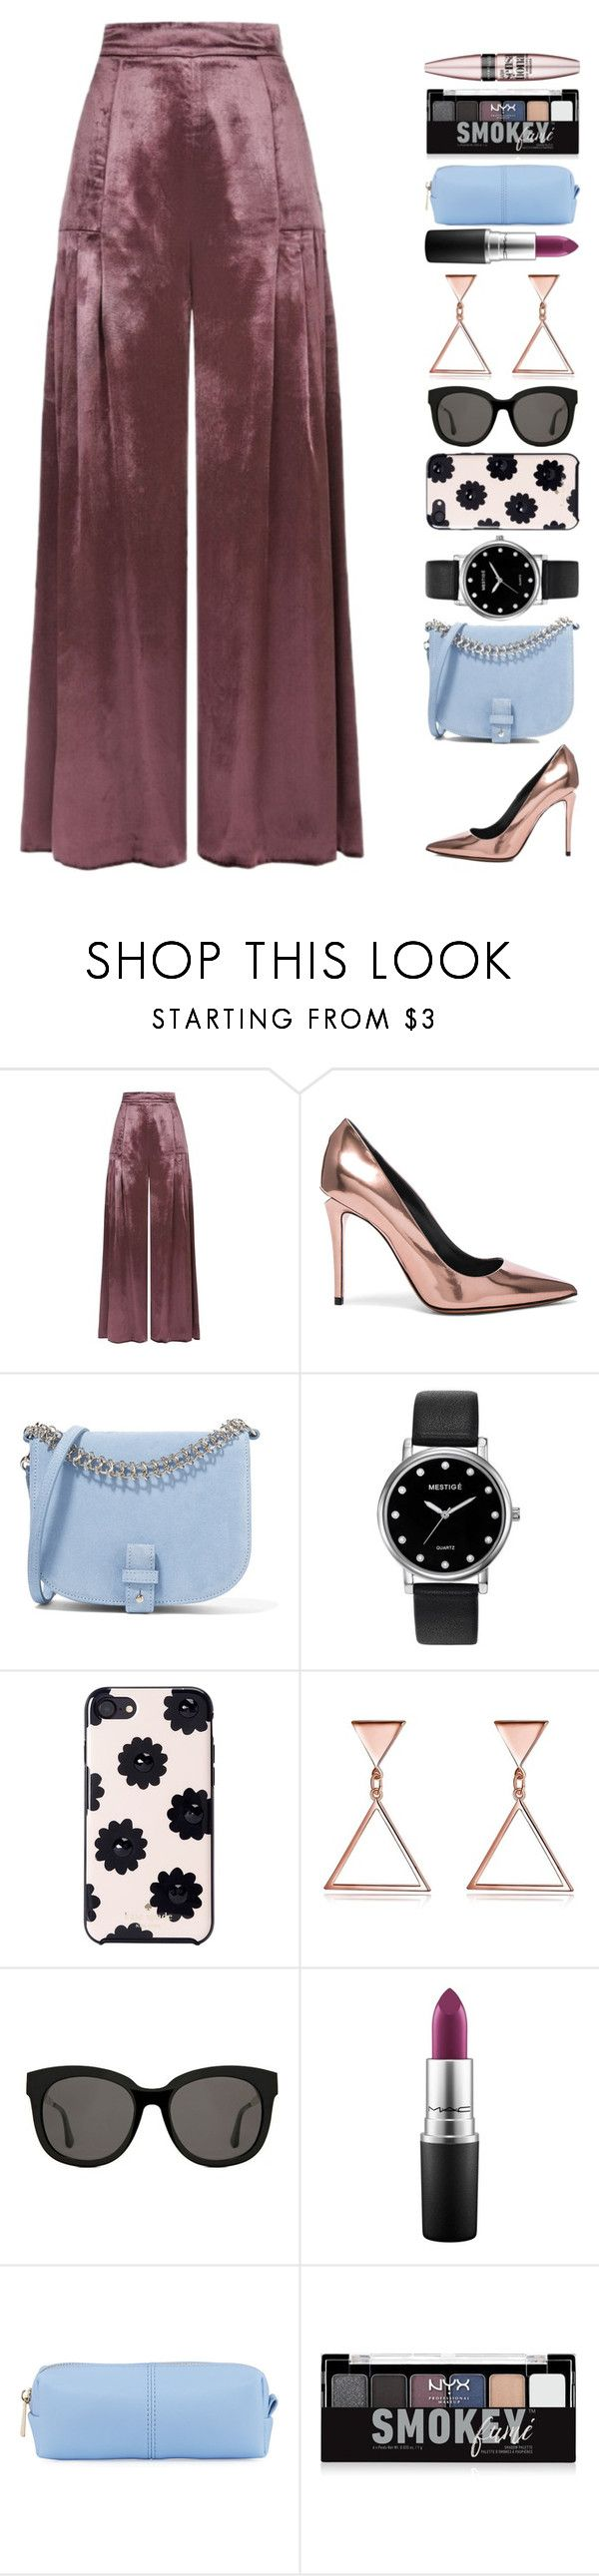 """2 novembre"" by elyblog ❤ liked on Polyvore featuring Temperley London, Alexander Wang, Little Liffner, Mestige, Kate Spade, Gentle Monster, MAC Cosmetics, KC Jagger, NYX and Maybelline"